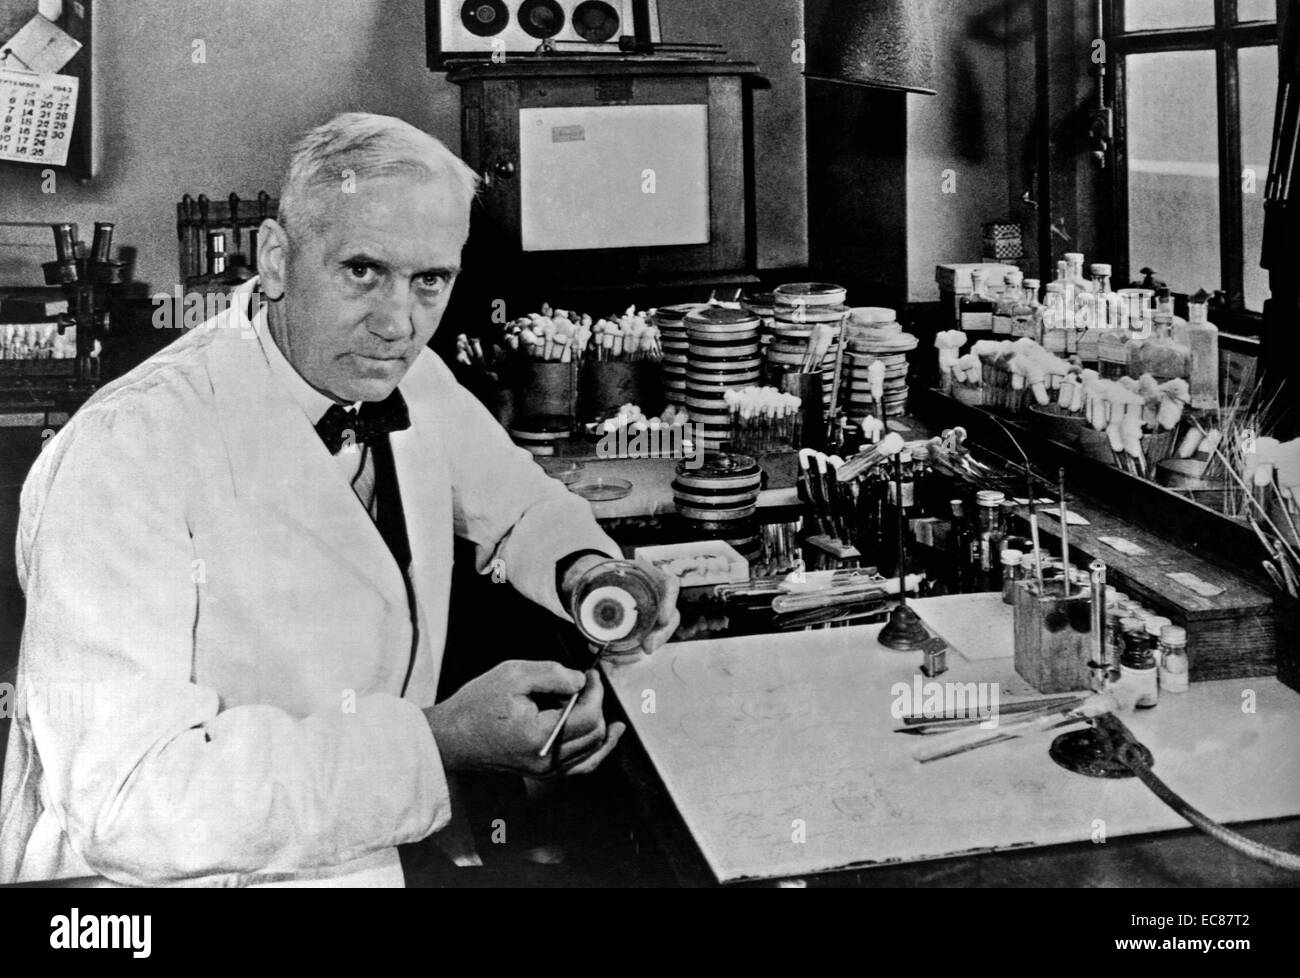 Sir Alexander Fleming, (6 août 1881 - 11 mars 1955) était un biologiste écossais Photo Stock